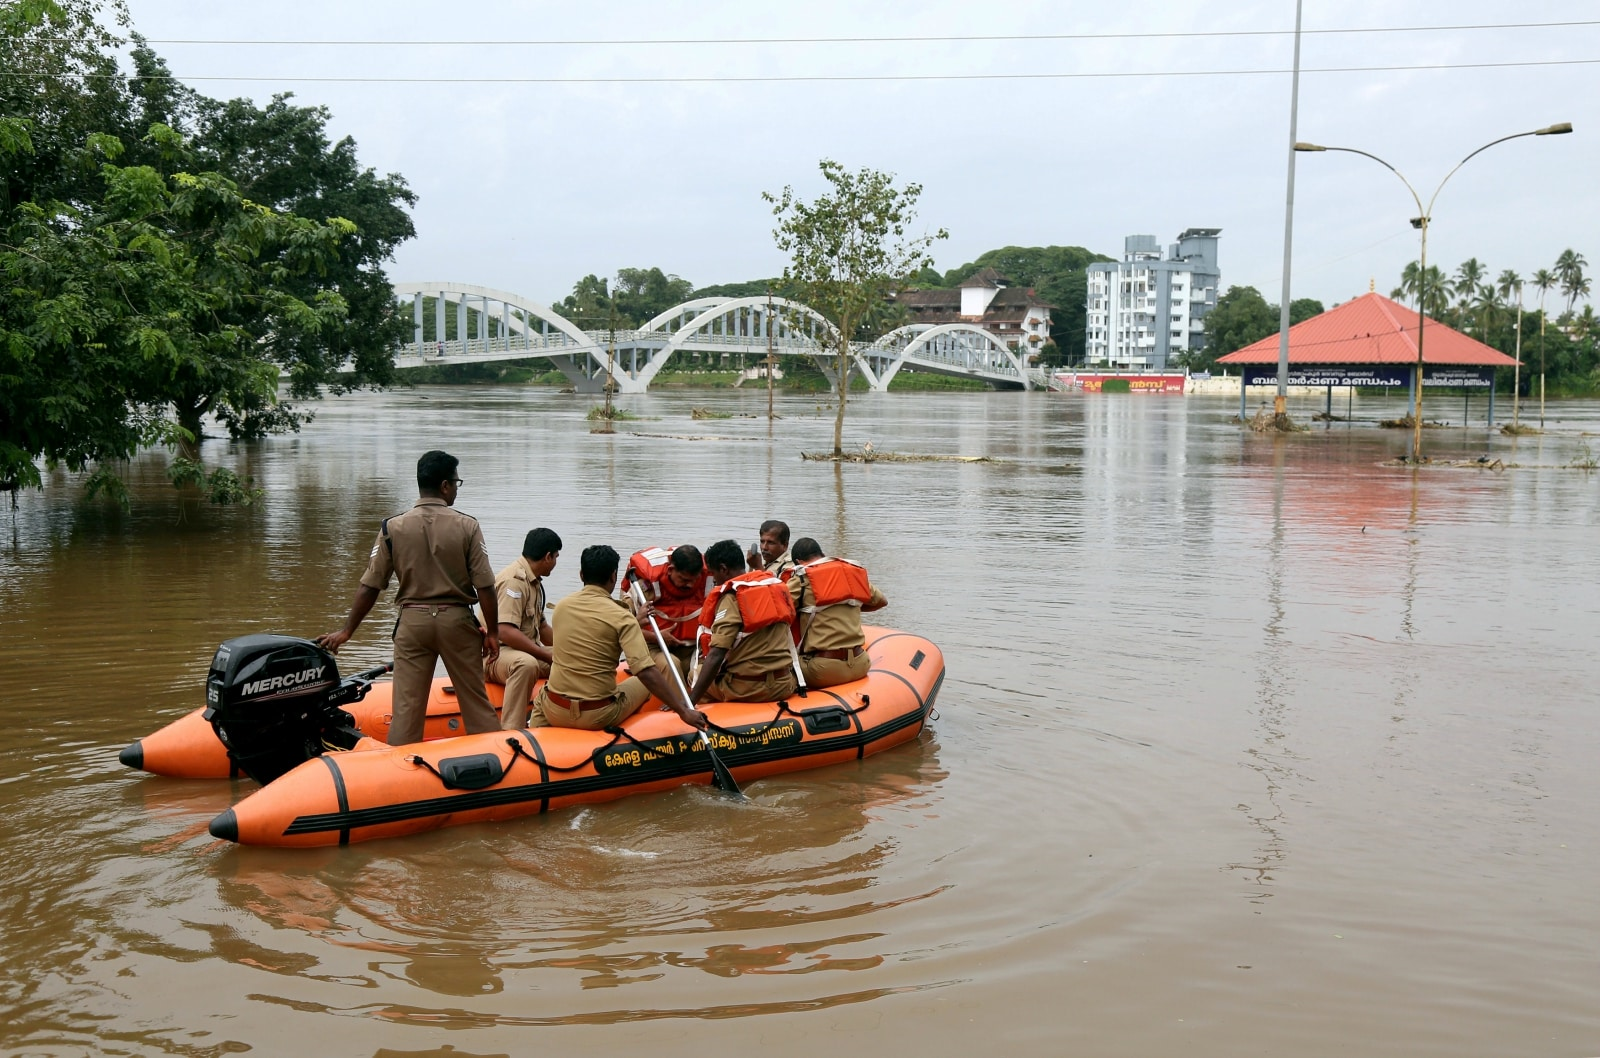 Rescue personnel patrol flooded waters on the banks of Periyar River after the opening of Idamalayar and Cheruthoni dam gates following heavy rains, on the outskirts of Kochi, Kerala. August 10, 2018. REUTERS/Sivaram V/File Photo